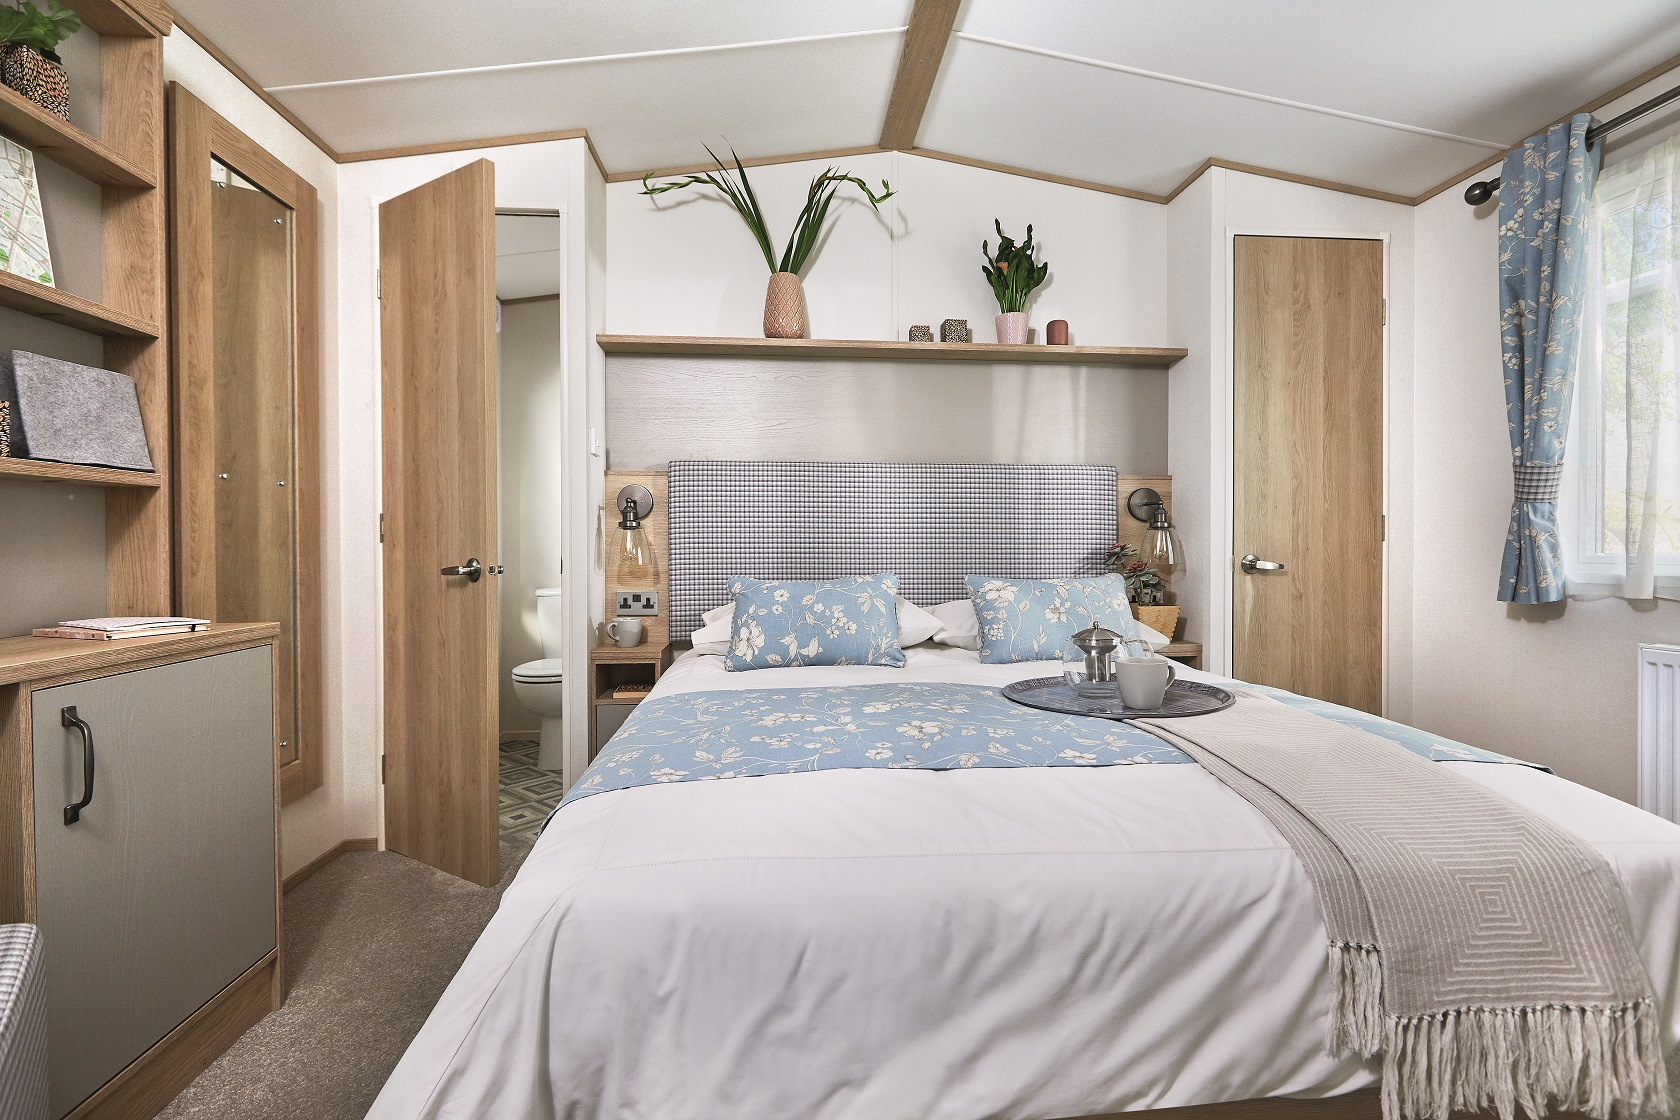 ABI Windermere: New Static Caravans and Holiday Homes for Sale, Available to Order Large Image 4